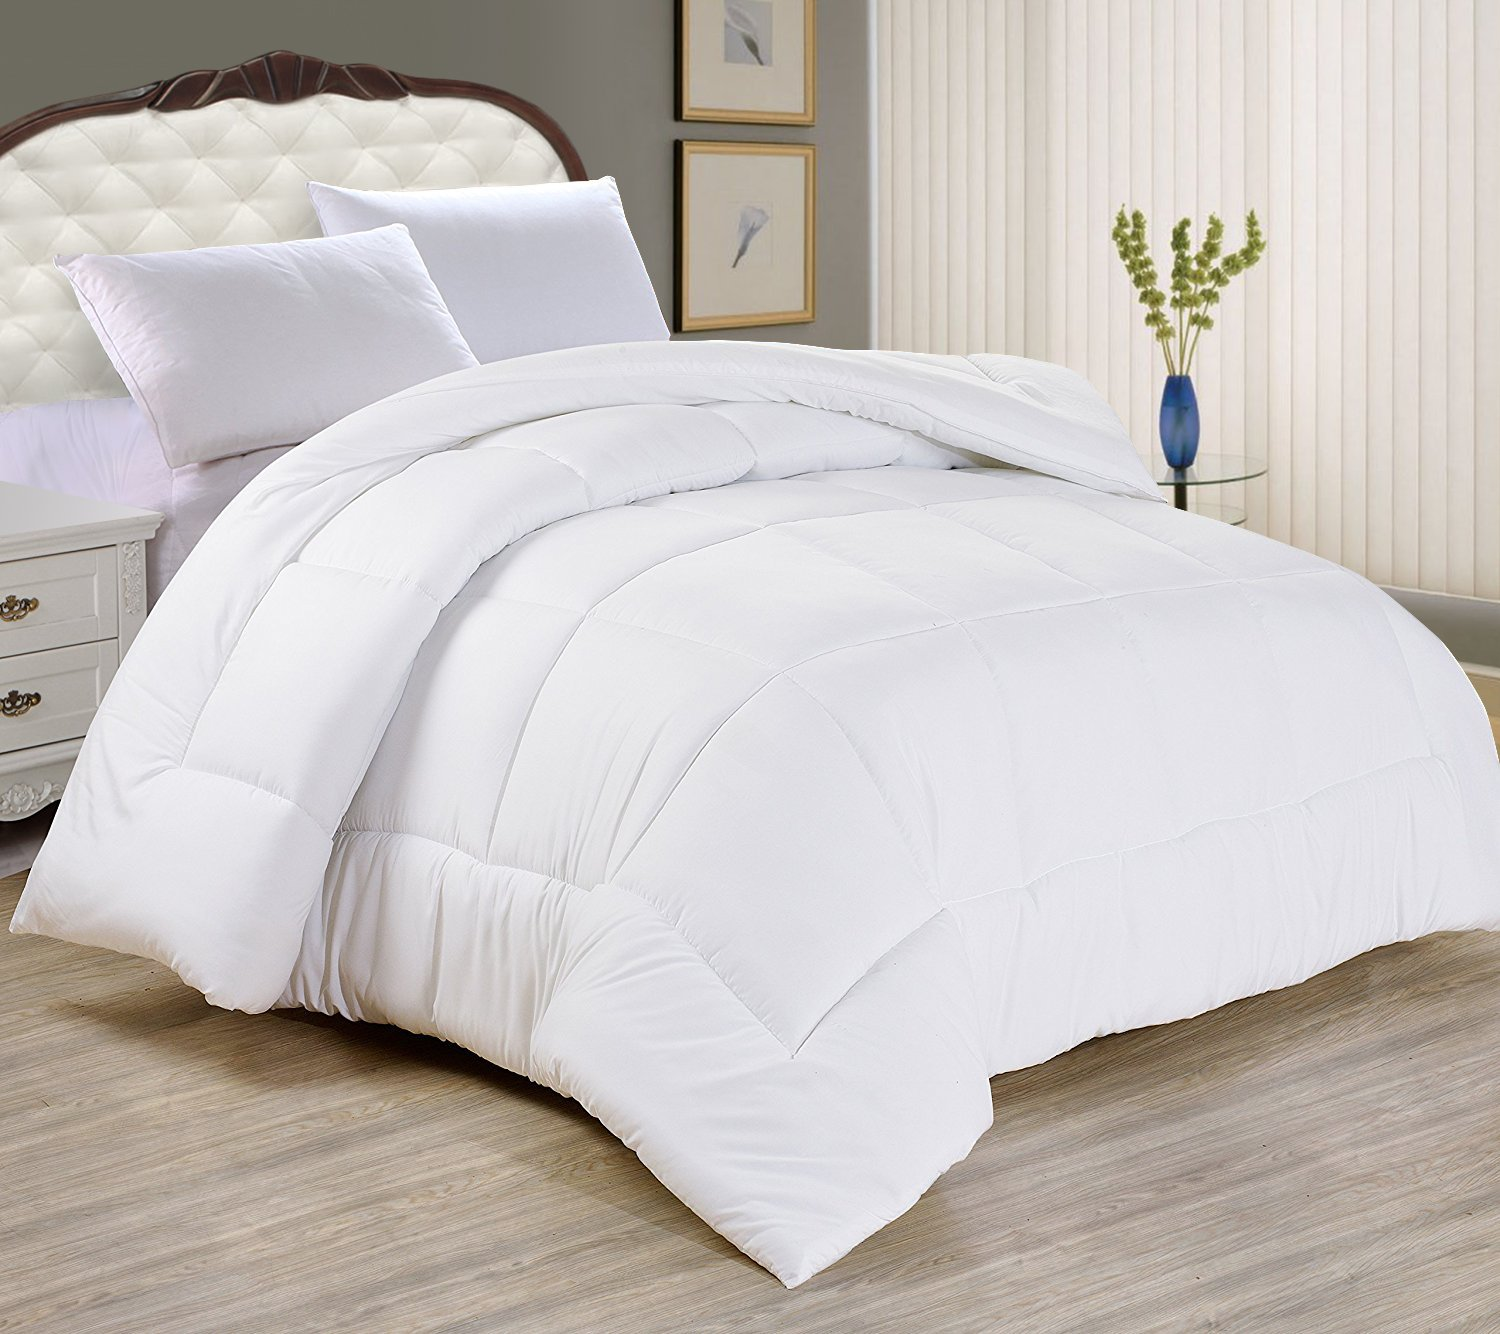 Superior Amazon.com: Night Guard   Goose Down Alternative Comforter   90Gsm   Ultra  Soft, Plush Blanket   Comfortable Bedspreads Used As A Throw, Duvet Insert  Or ...